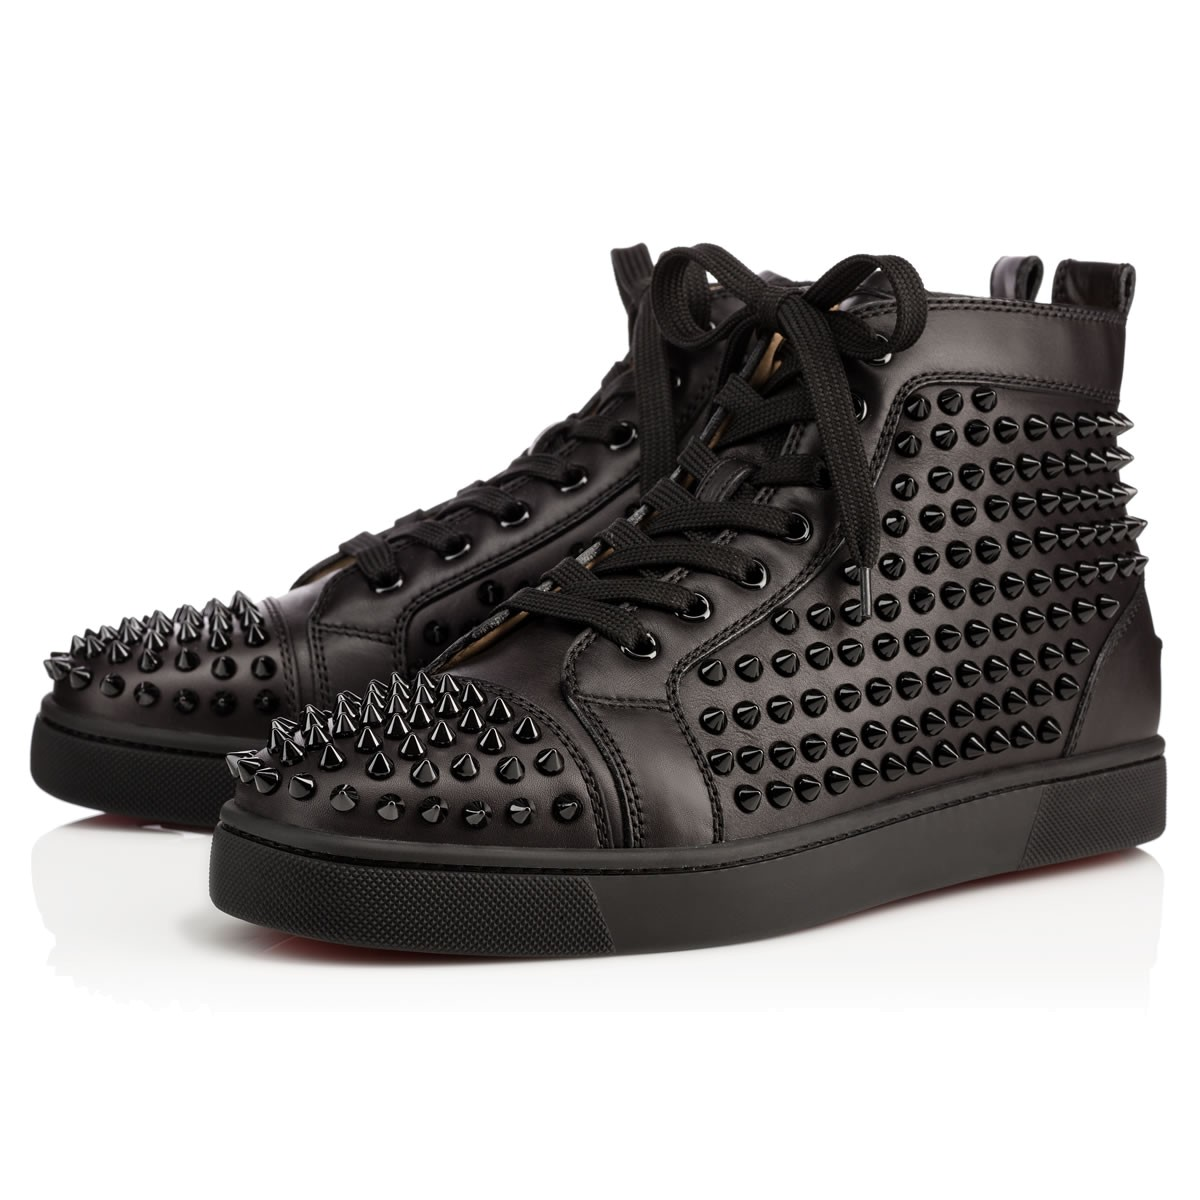 e832ece329b Louis Spikes Men s Flat Black Black Bk Leather - Men Shoes ...